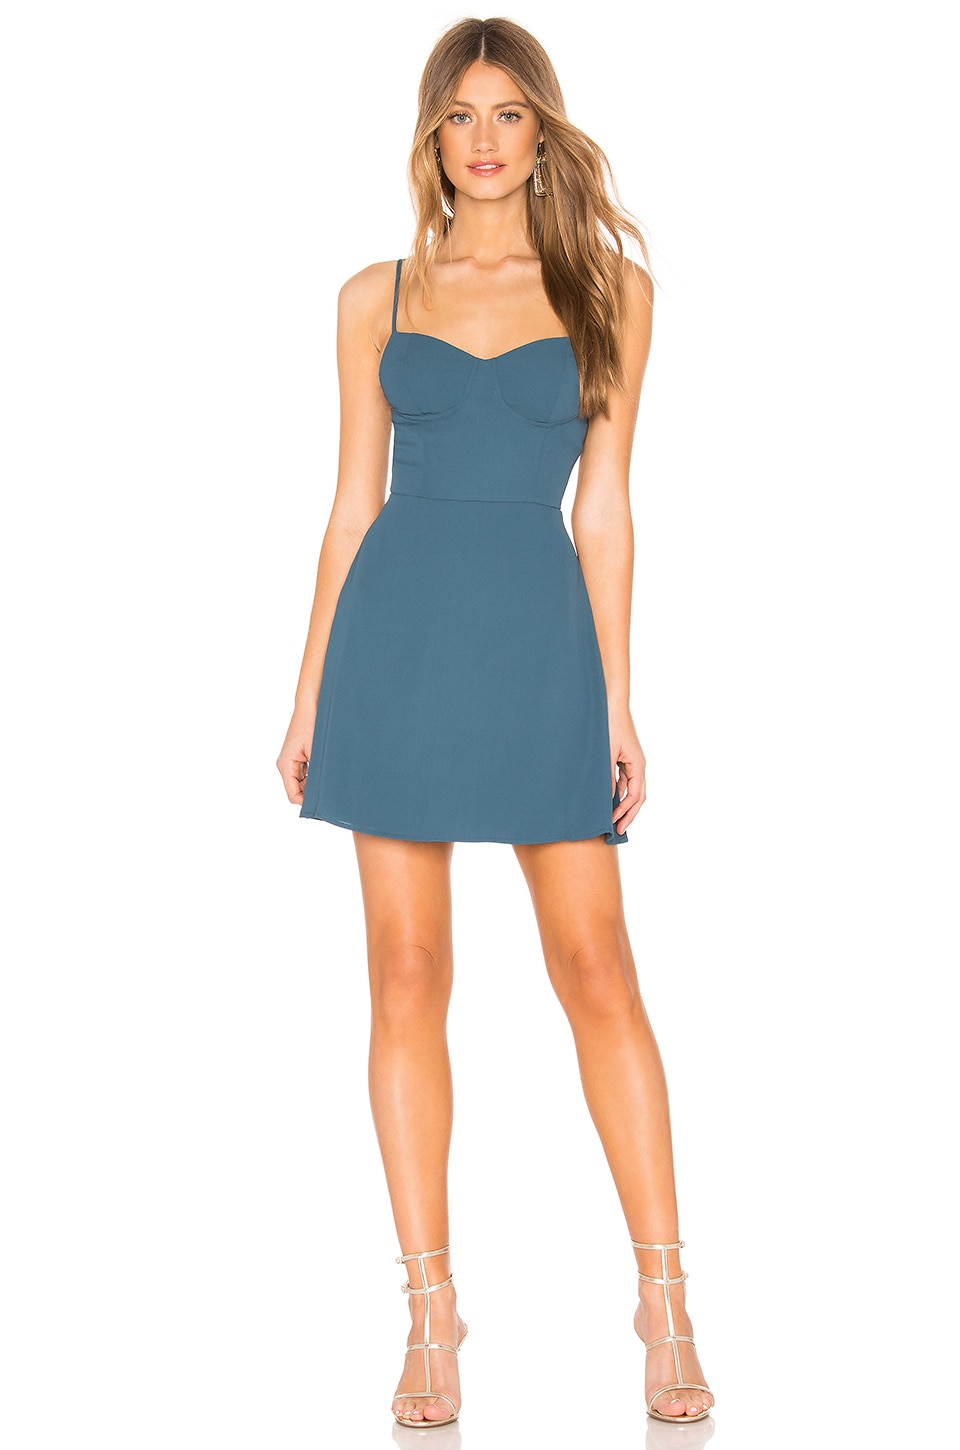 About Us Lyla Bustier Mini Dress in Teal Blue